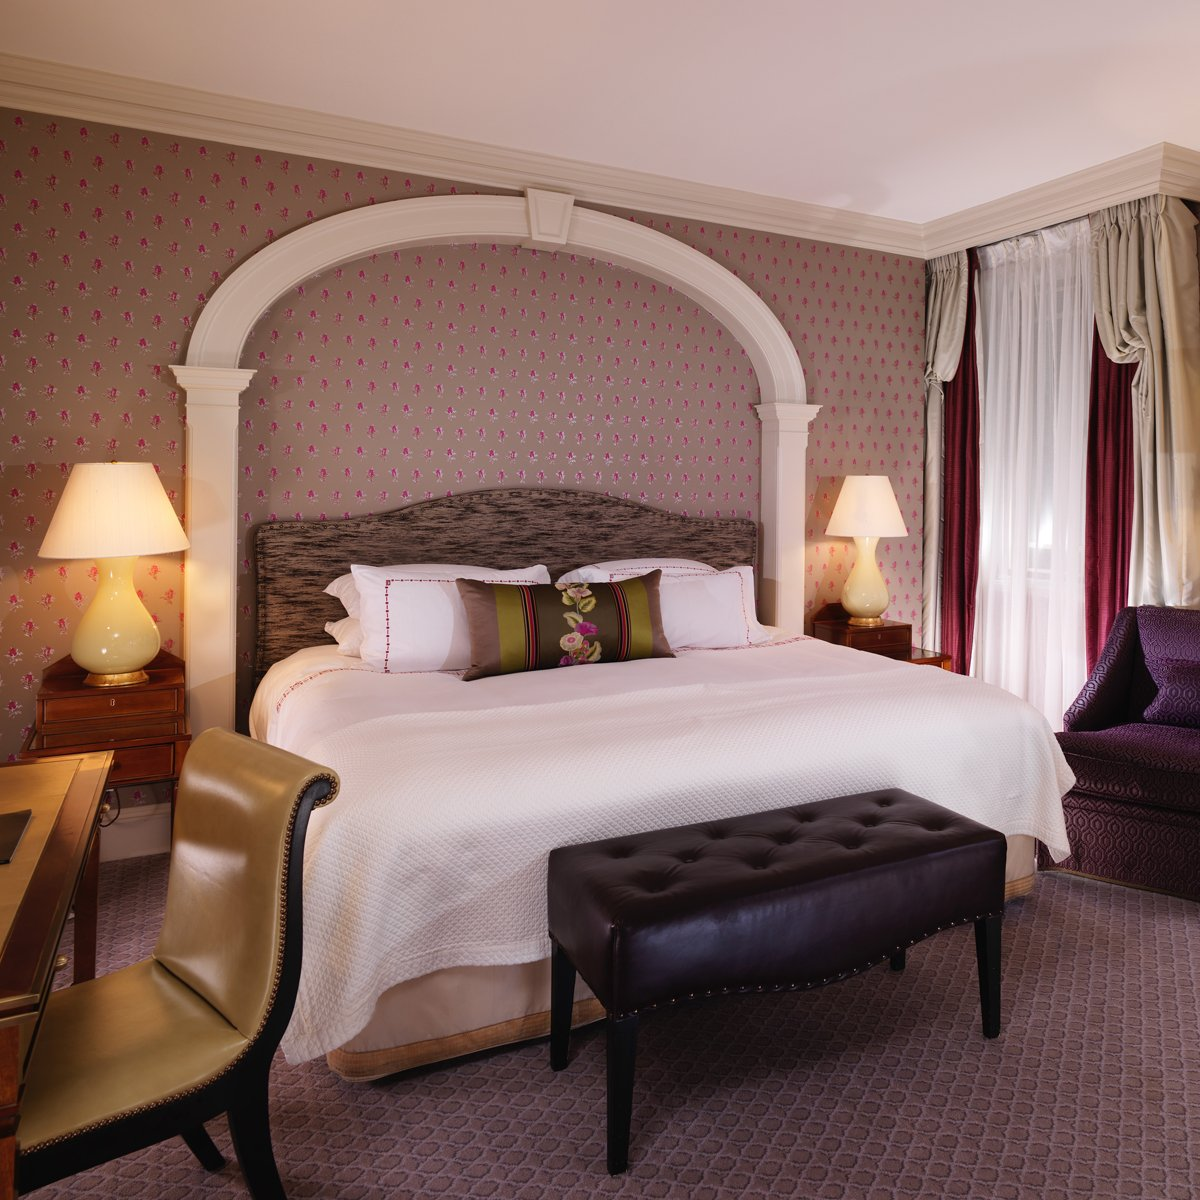 Superior King Room at The Dorchester | Dorchester Collection